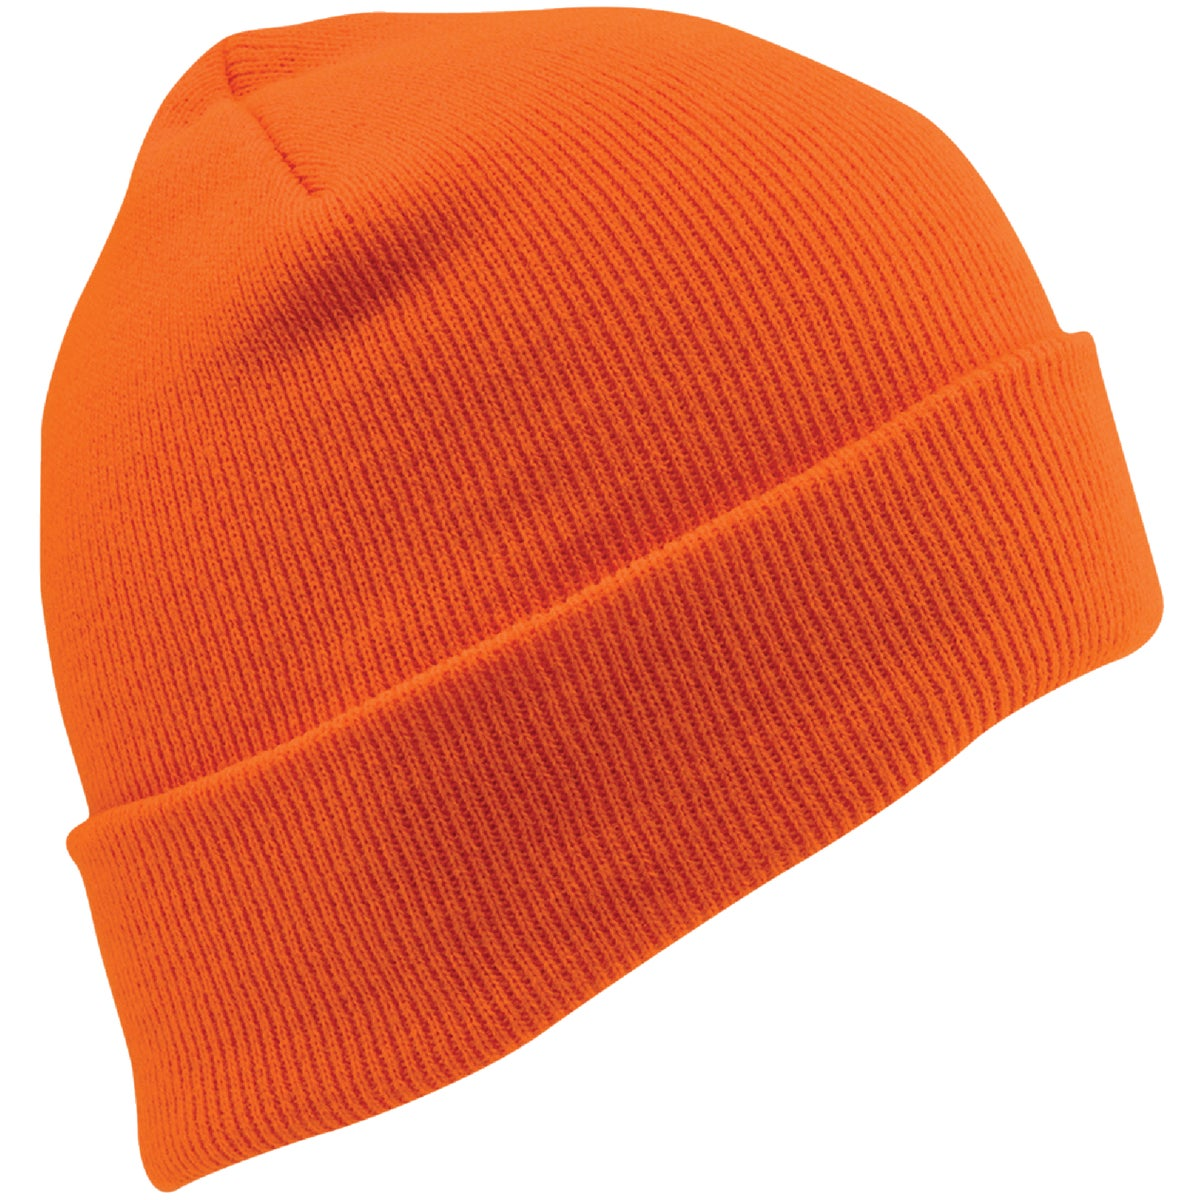 BLAZE ORANGE 1017 CAP - F4709-264 by Wigwam Mills, Inc